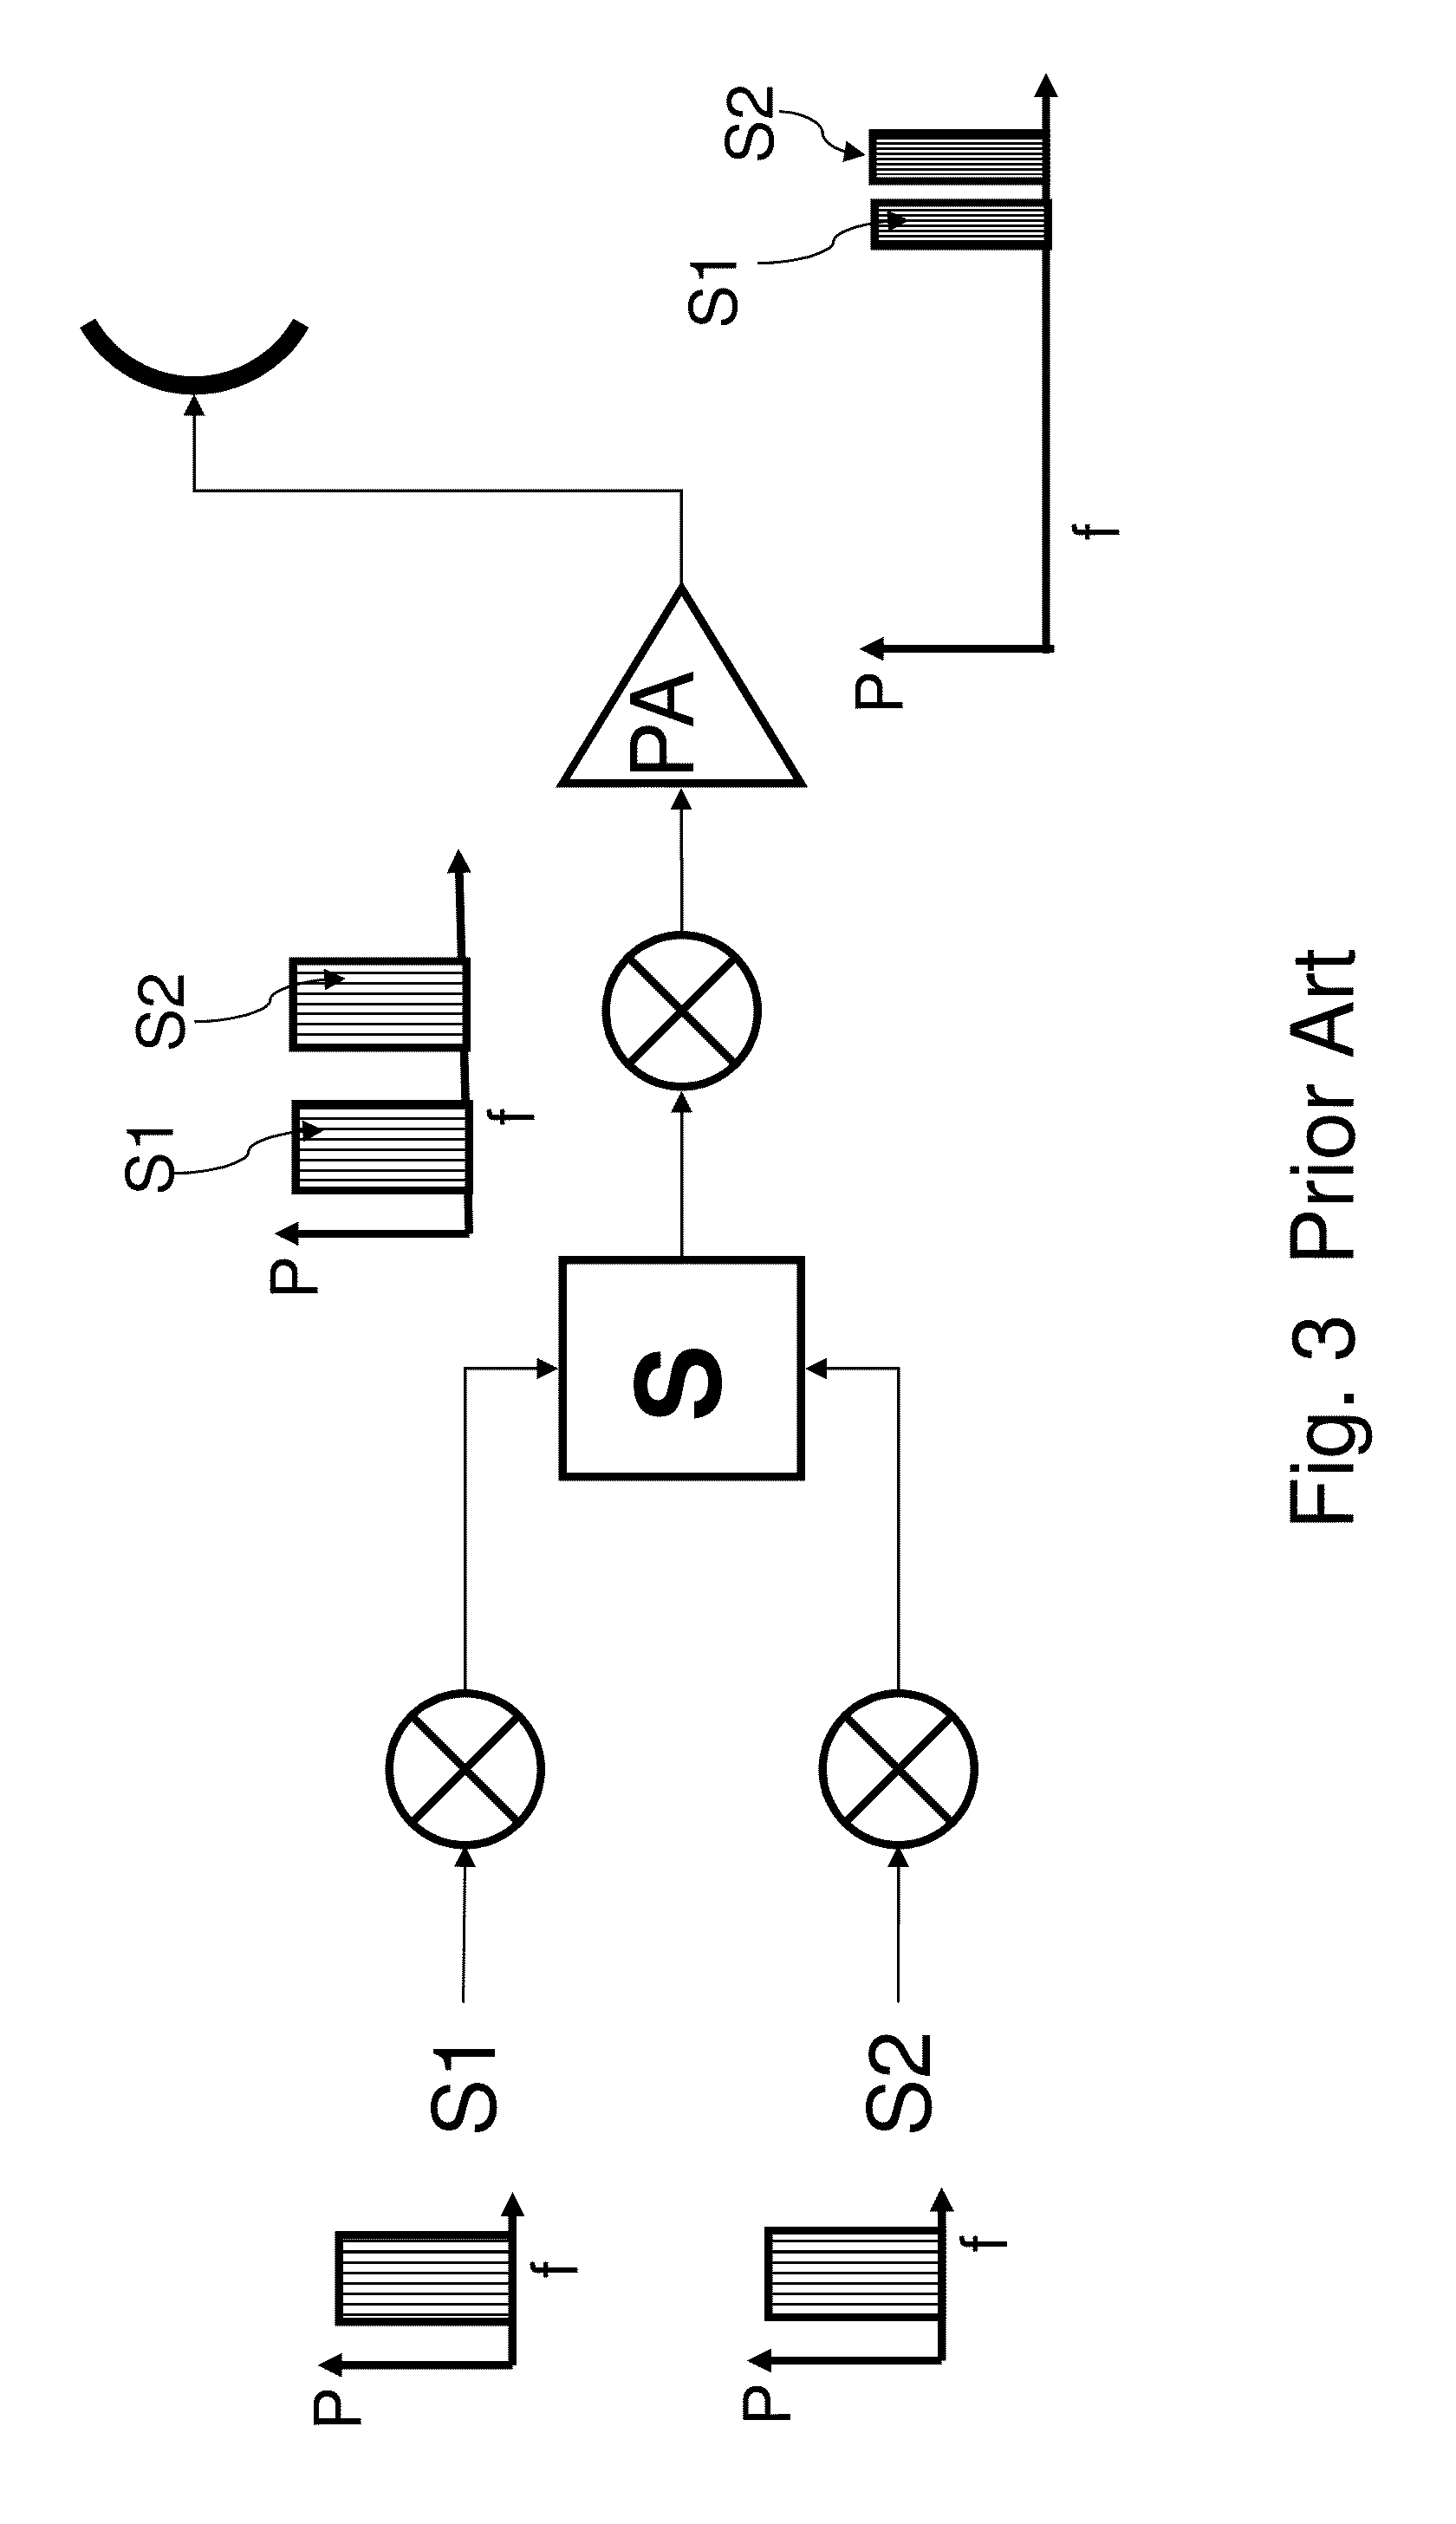 Fig Serial To Parallel Converter Simulnk The Scope Setup To